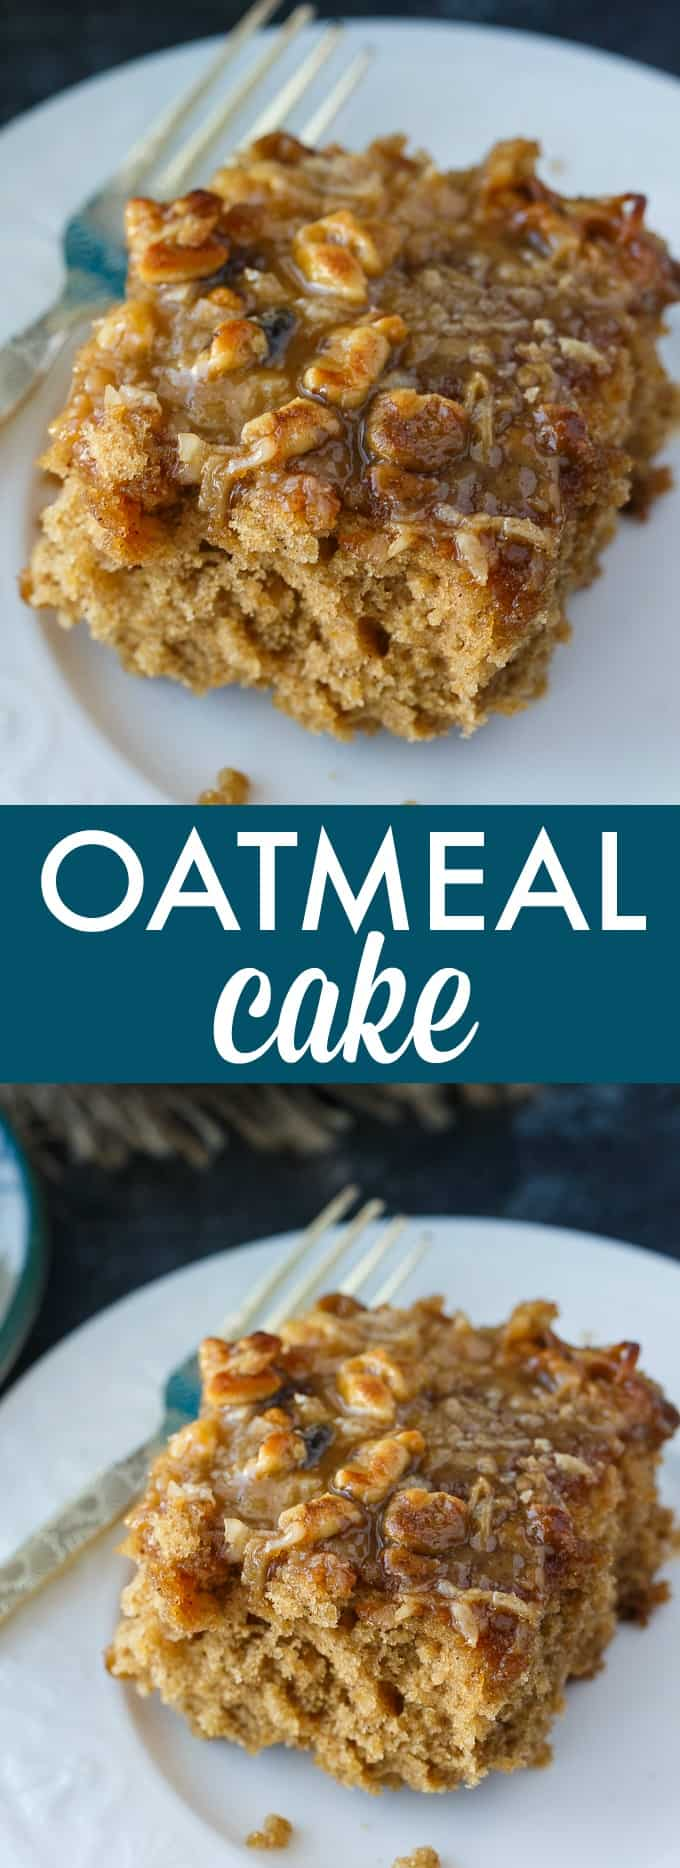 Oatmeal Cake - This incredibly moist vintage cake is covered in a sweet, buttery crunchy topping that is out of this world!